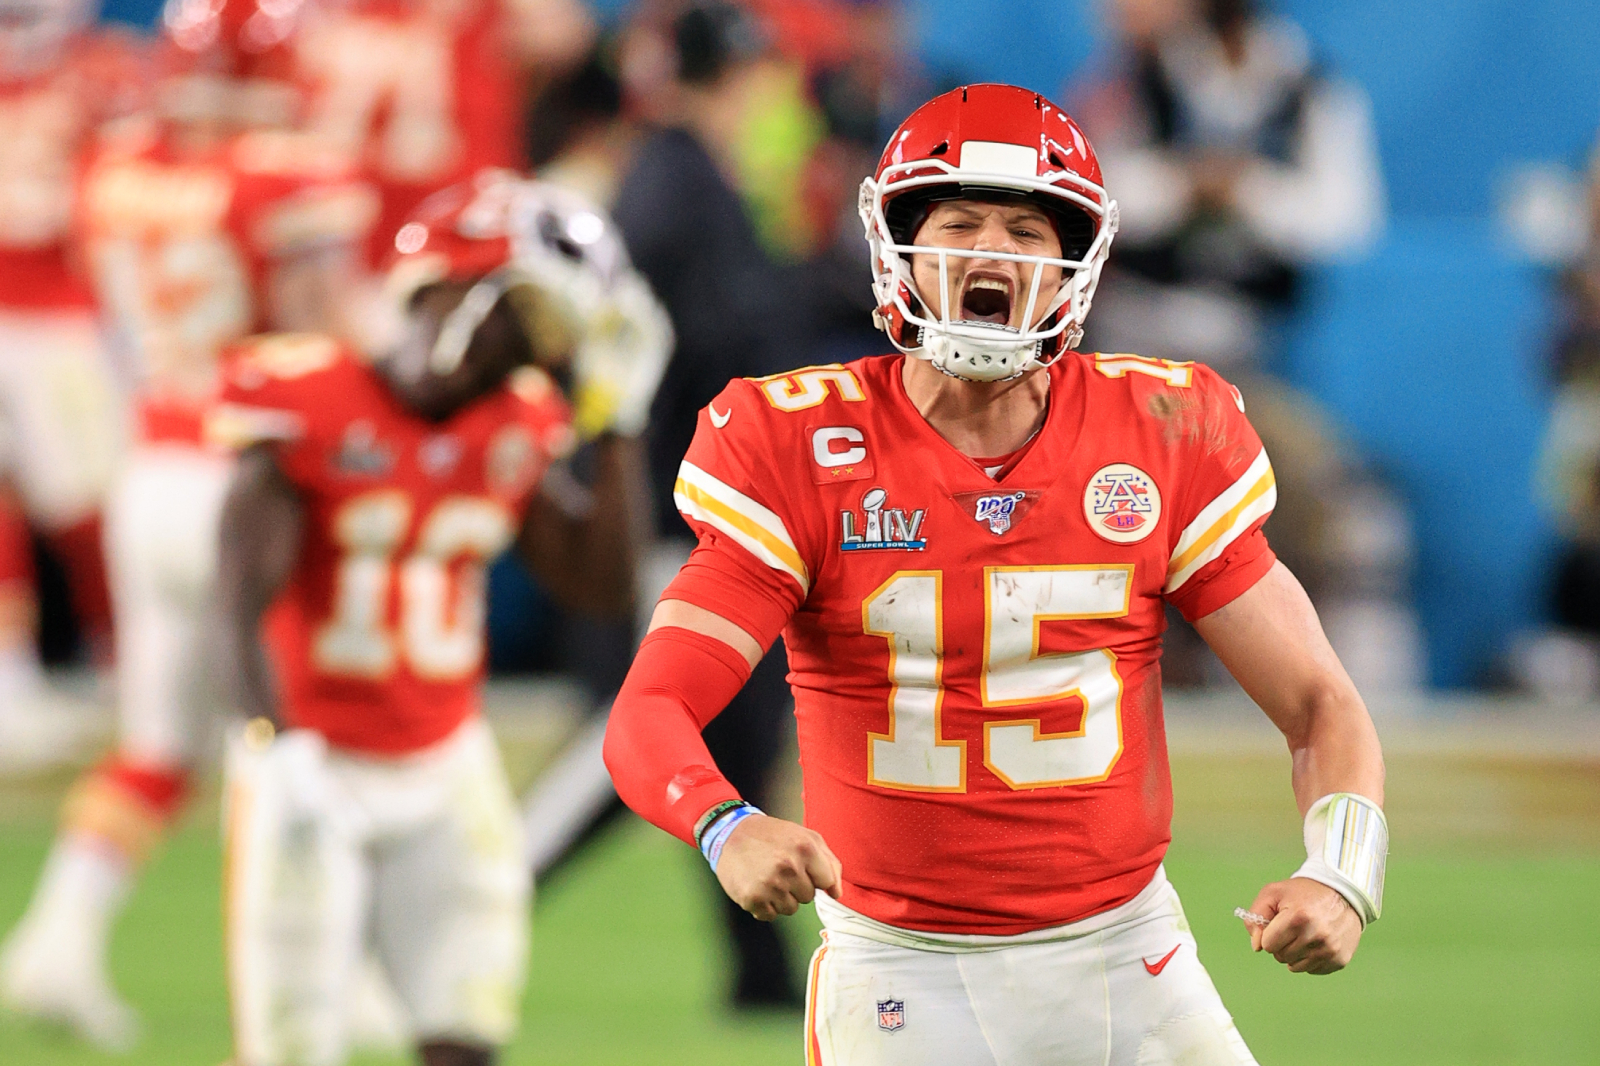 Patrick Mahomes is on track to be a legendary quarterback. So, how tall is Mahomes and how does his height compare to other great QBs?